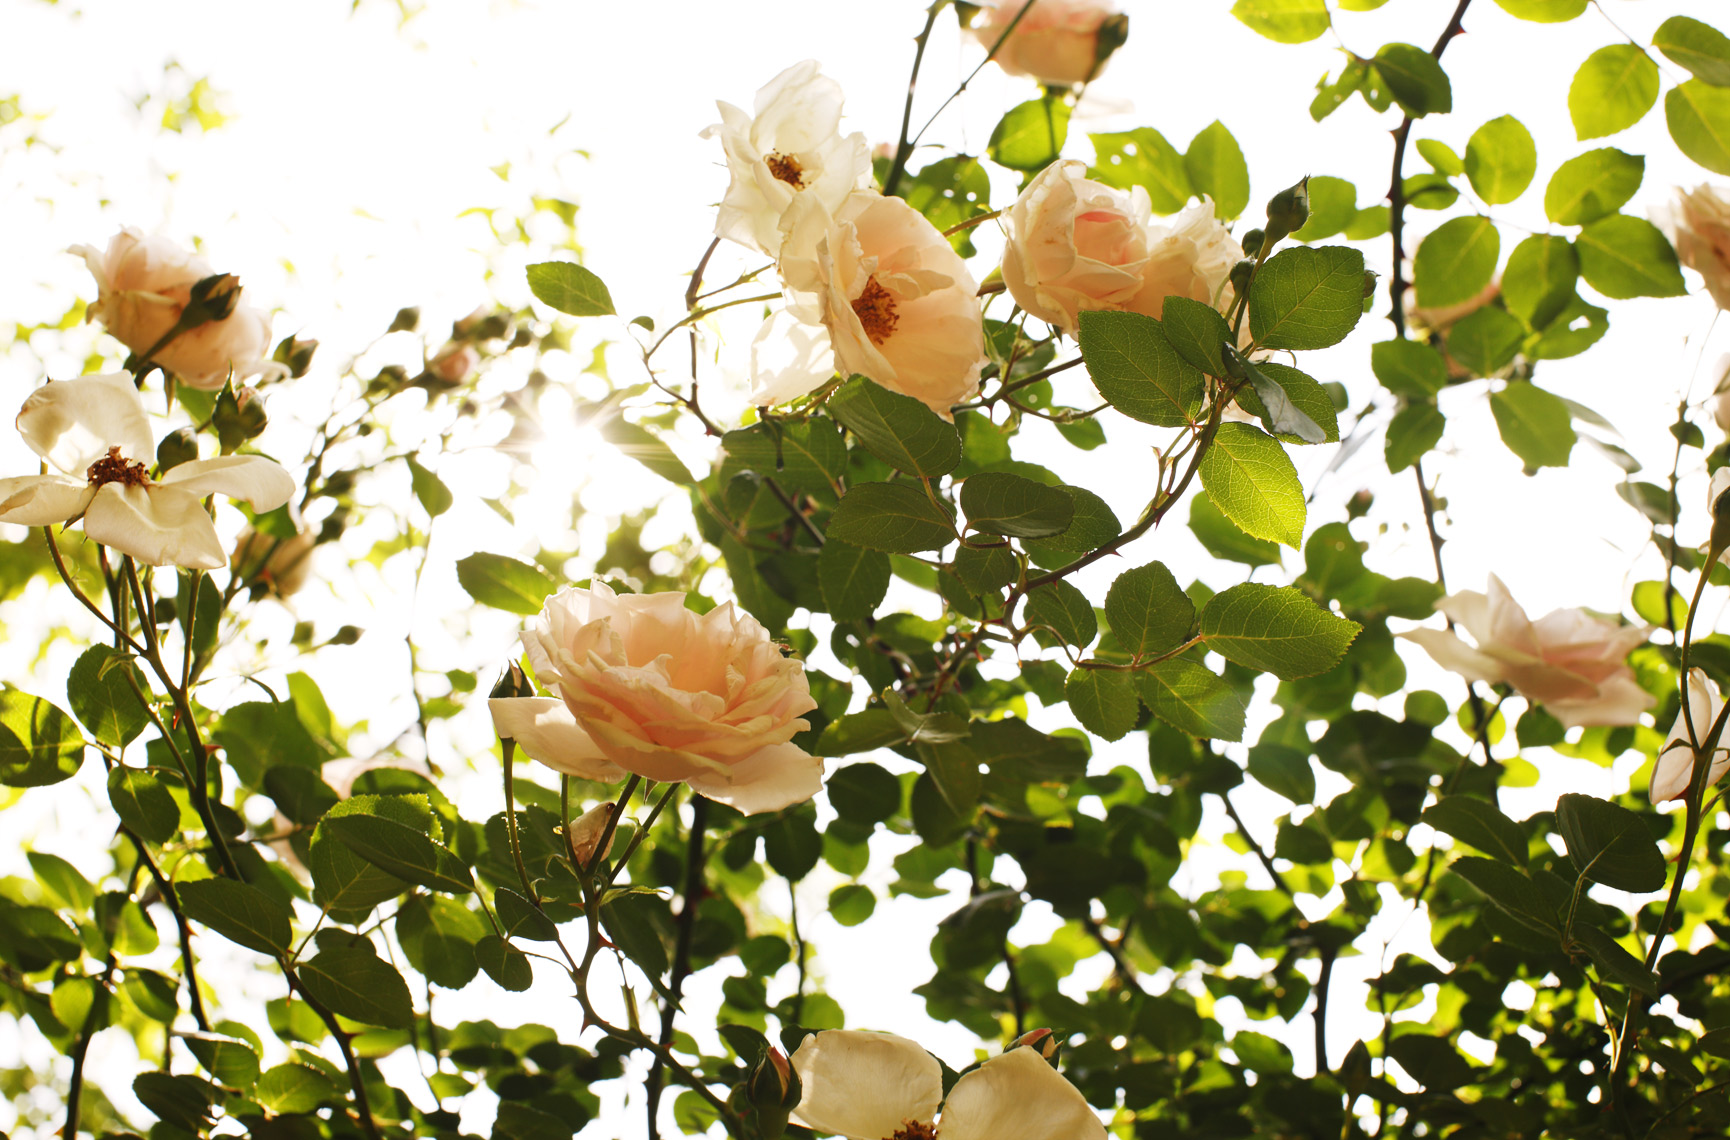 Elizabeth Elsey garden roses, photo by Mali Azima.